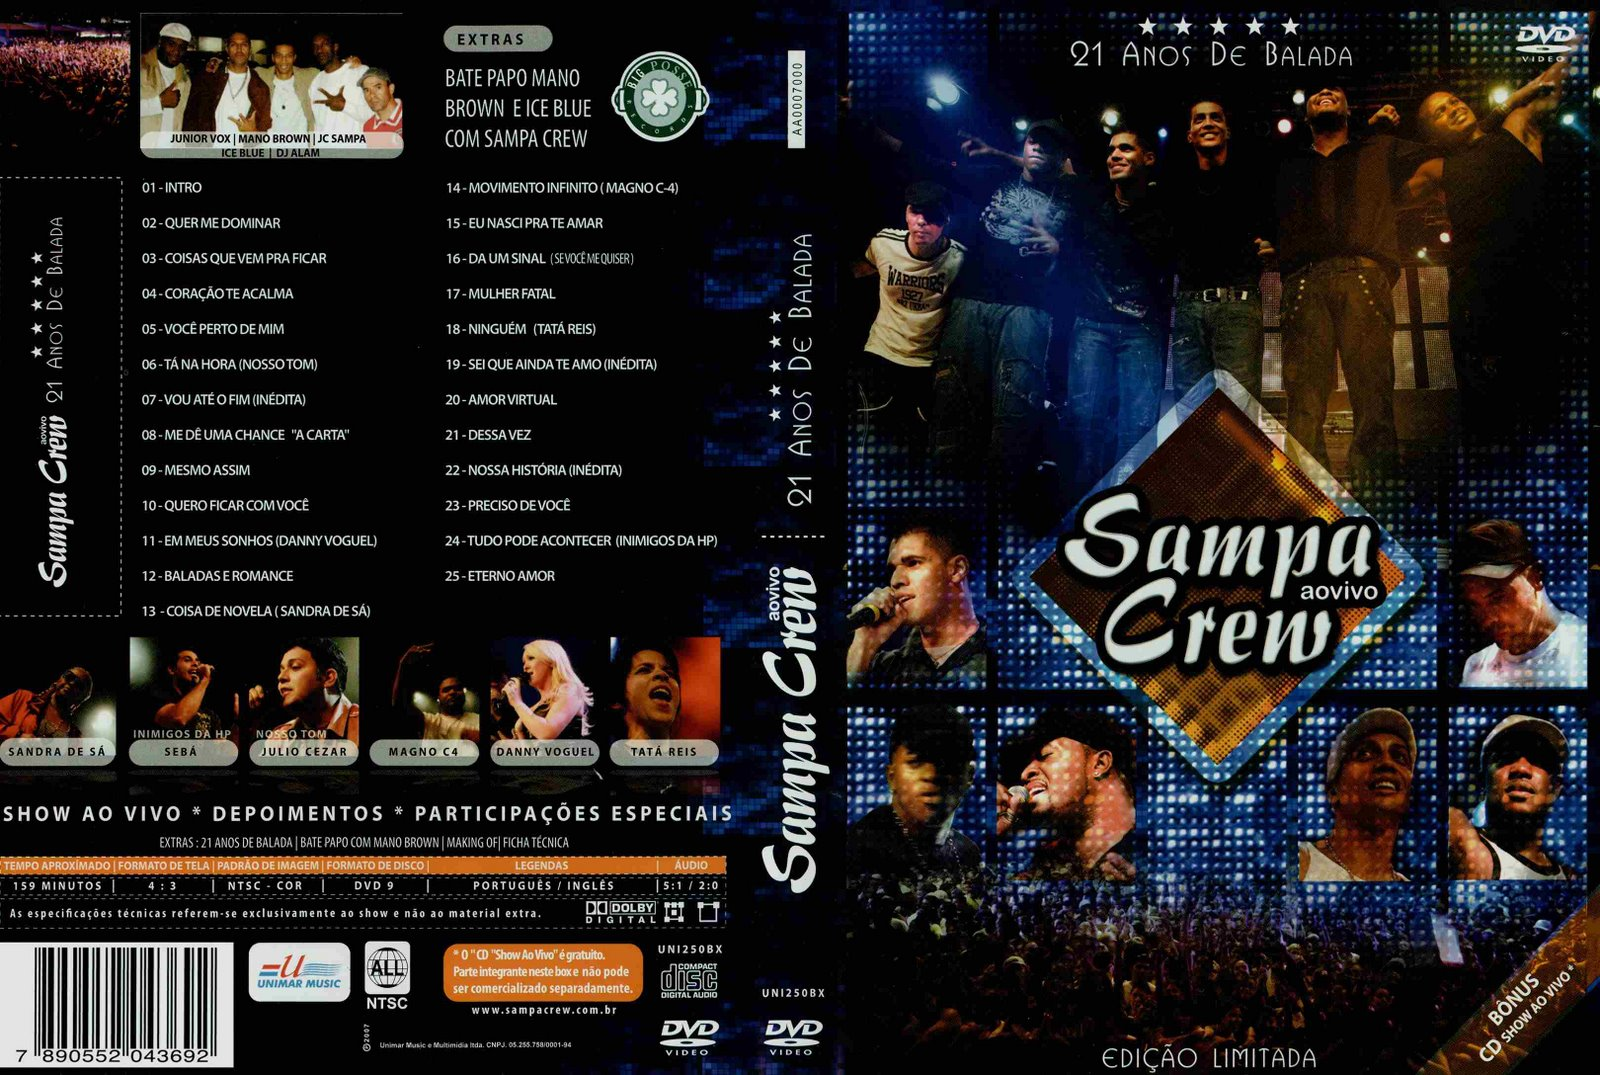 cd sampa crew 21 anos de balada mp3